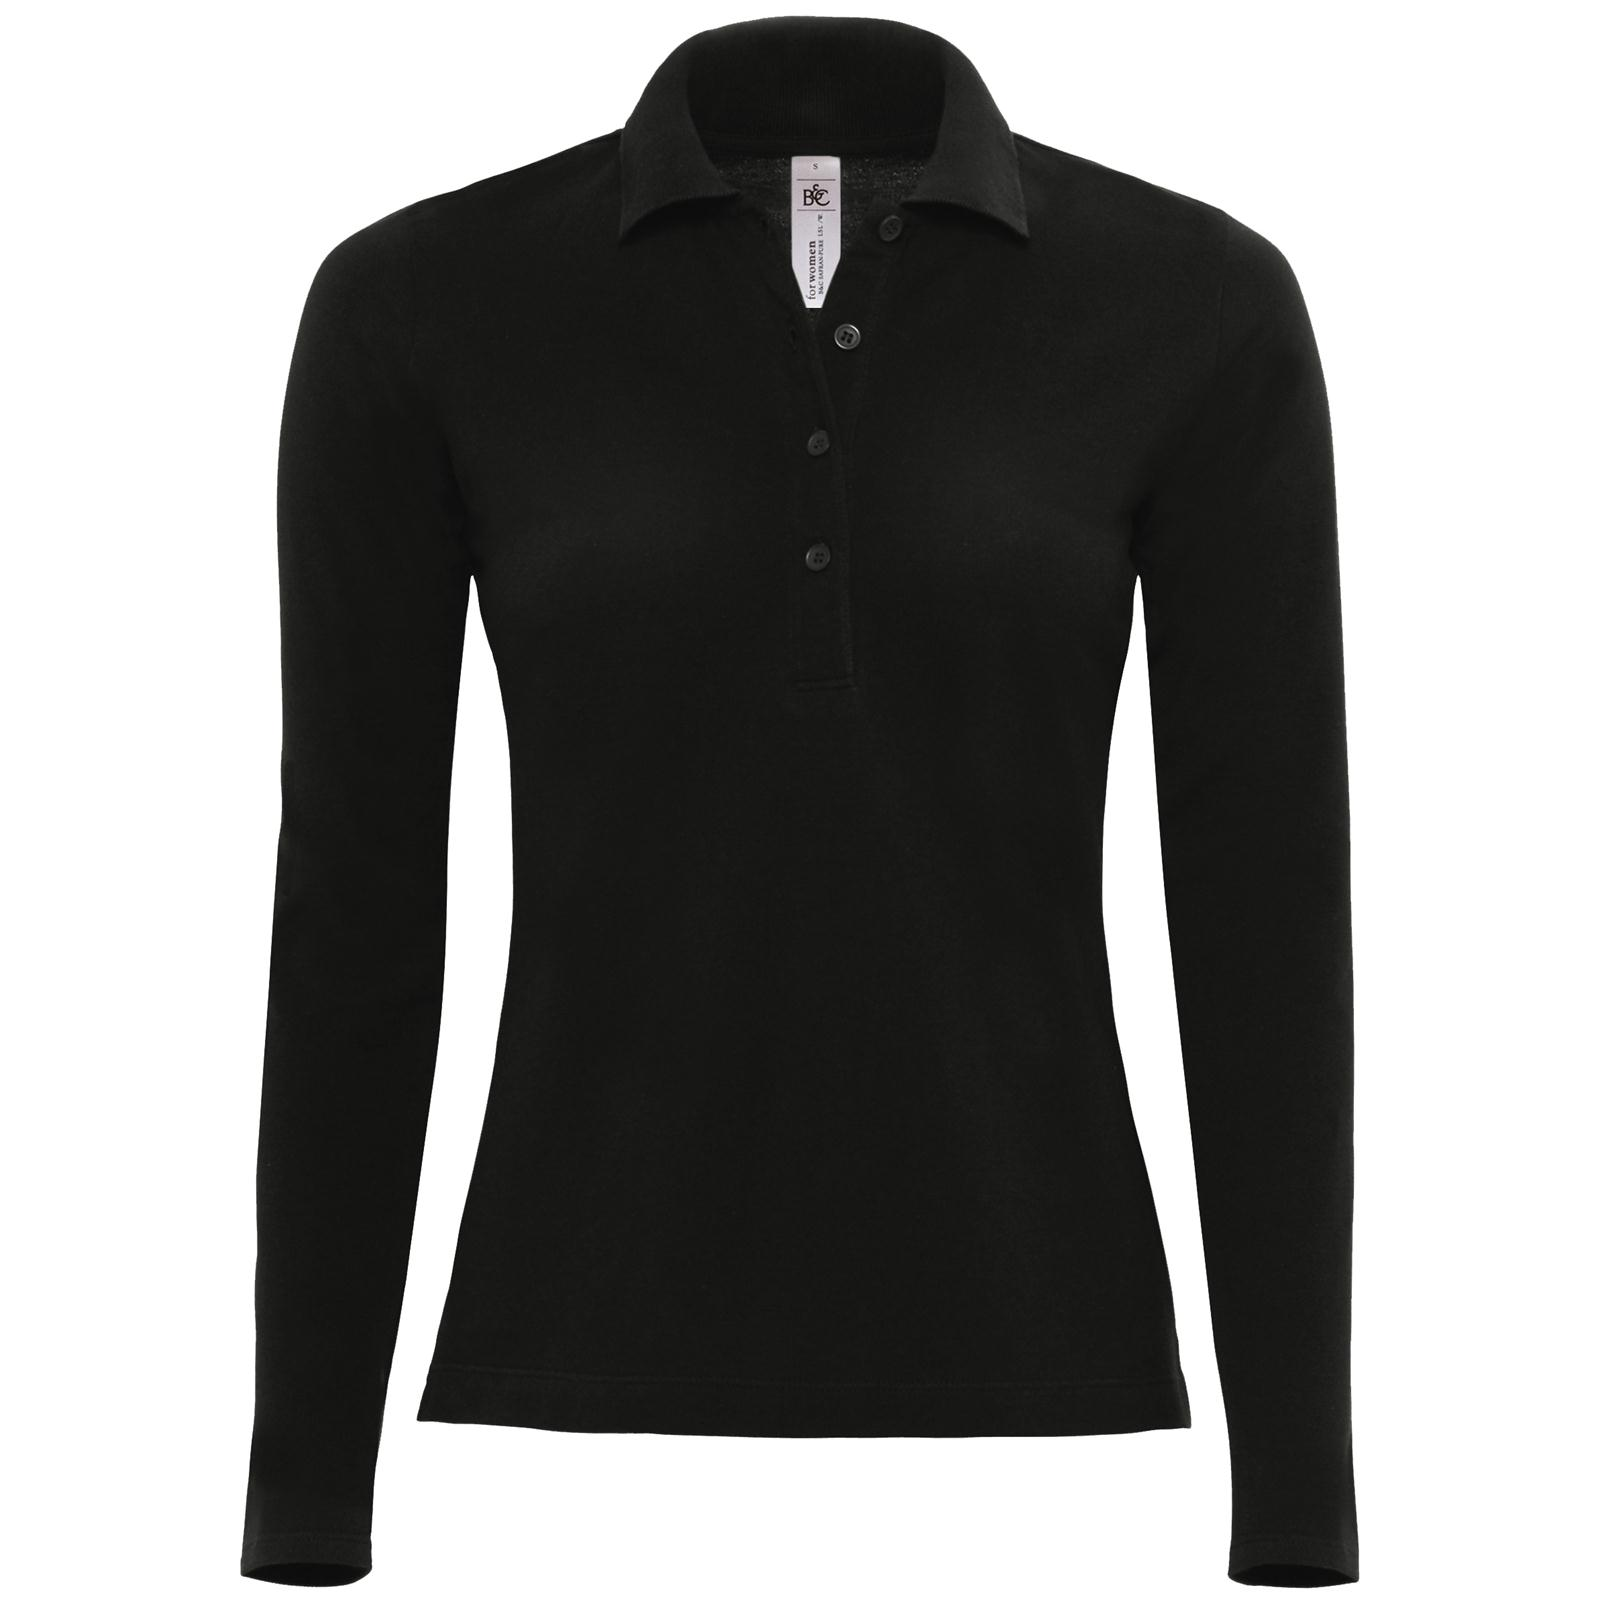 new b c womens ladies safran cotton long sleeve pique polo. Black Bedroom Furniture Sets. Home Design Ideas